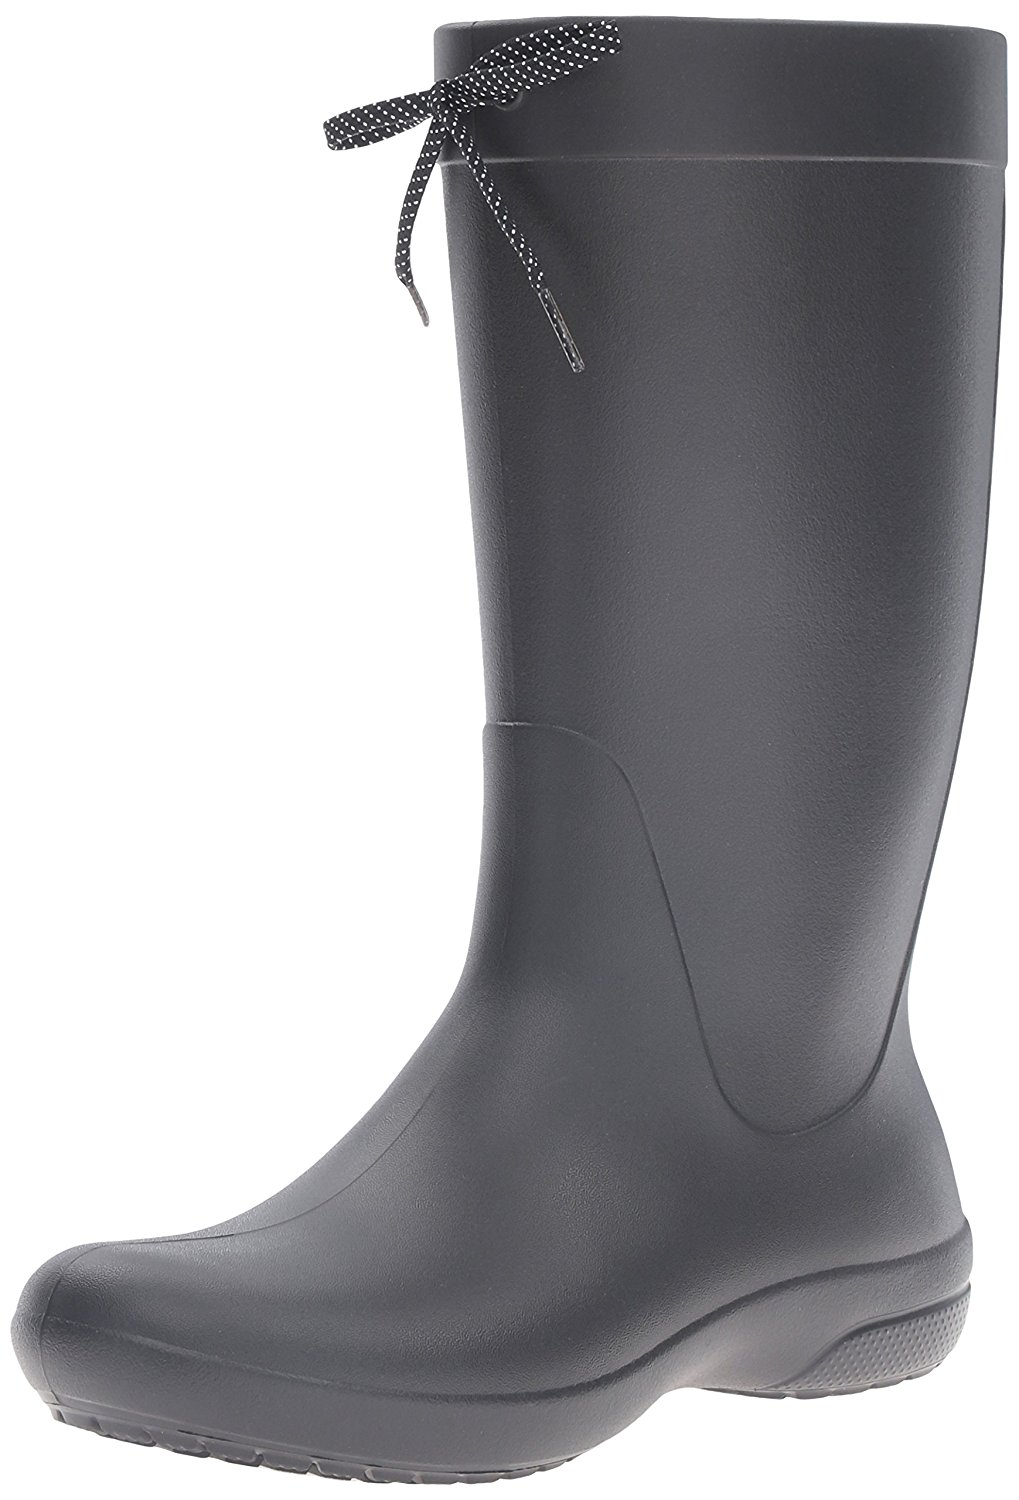 Amazon.com | crocs Women's Freesail Rain Boot, Black, 7 M US | Mid-Calf